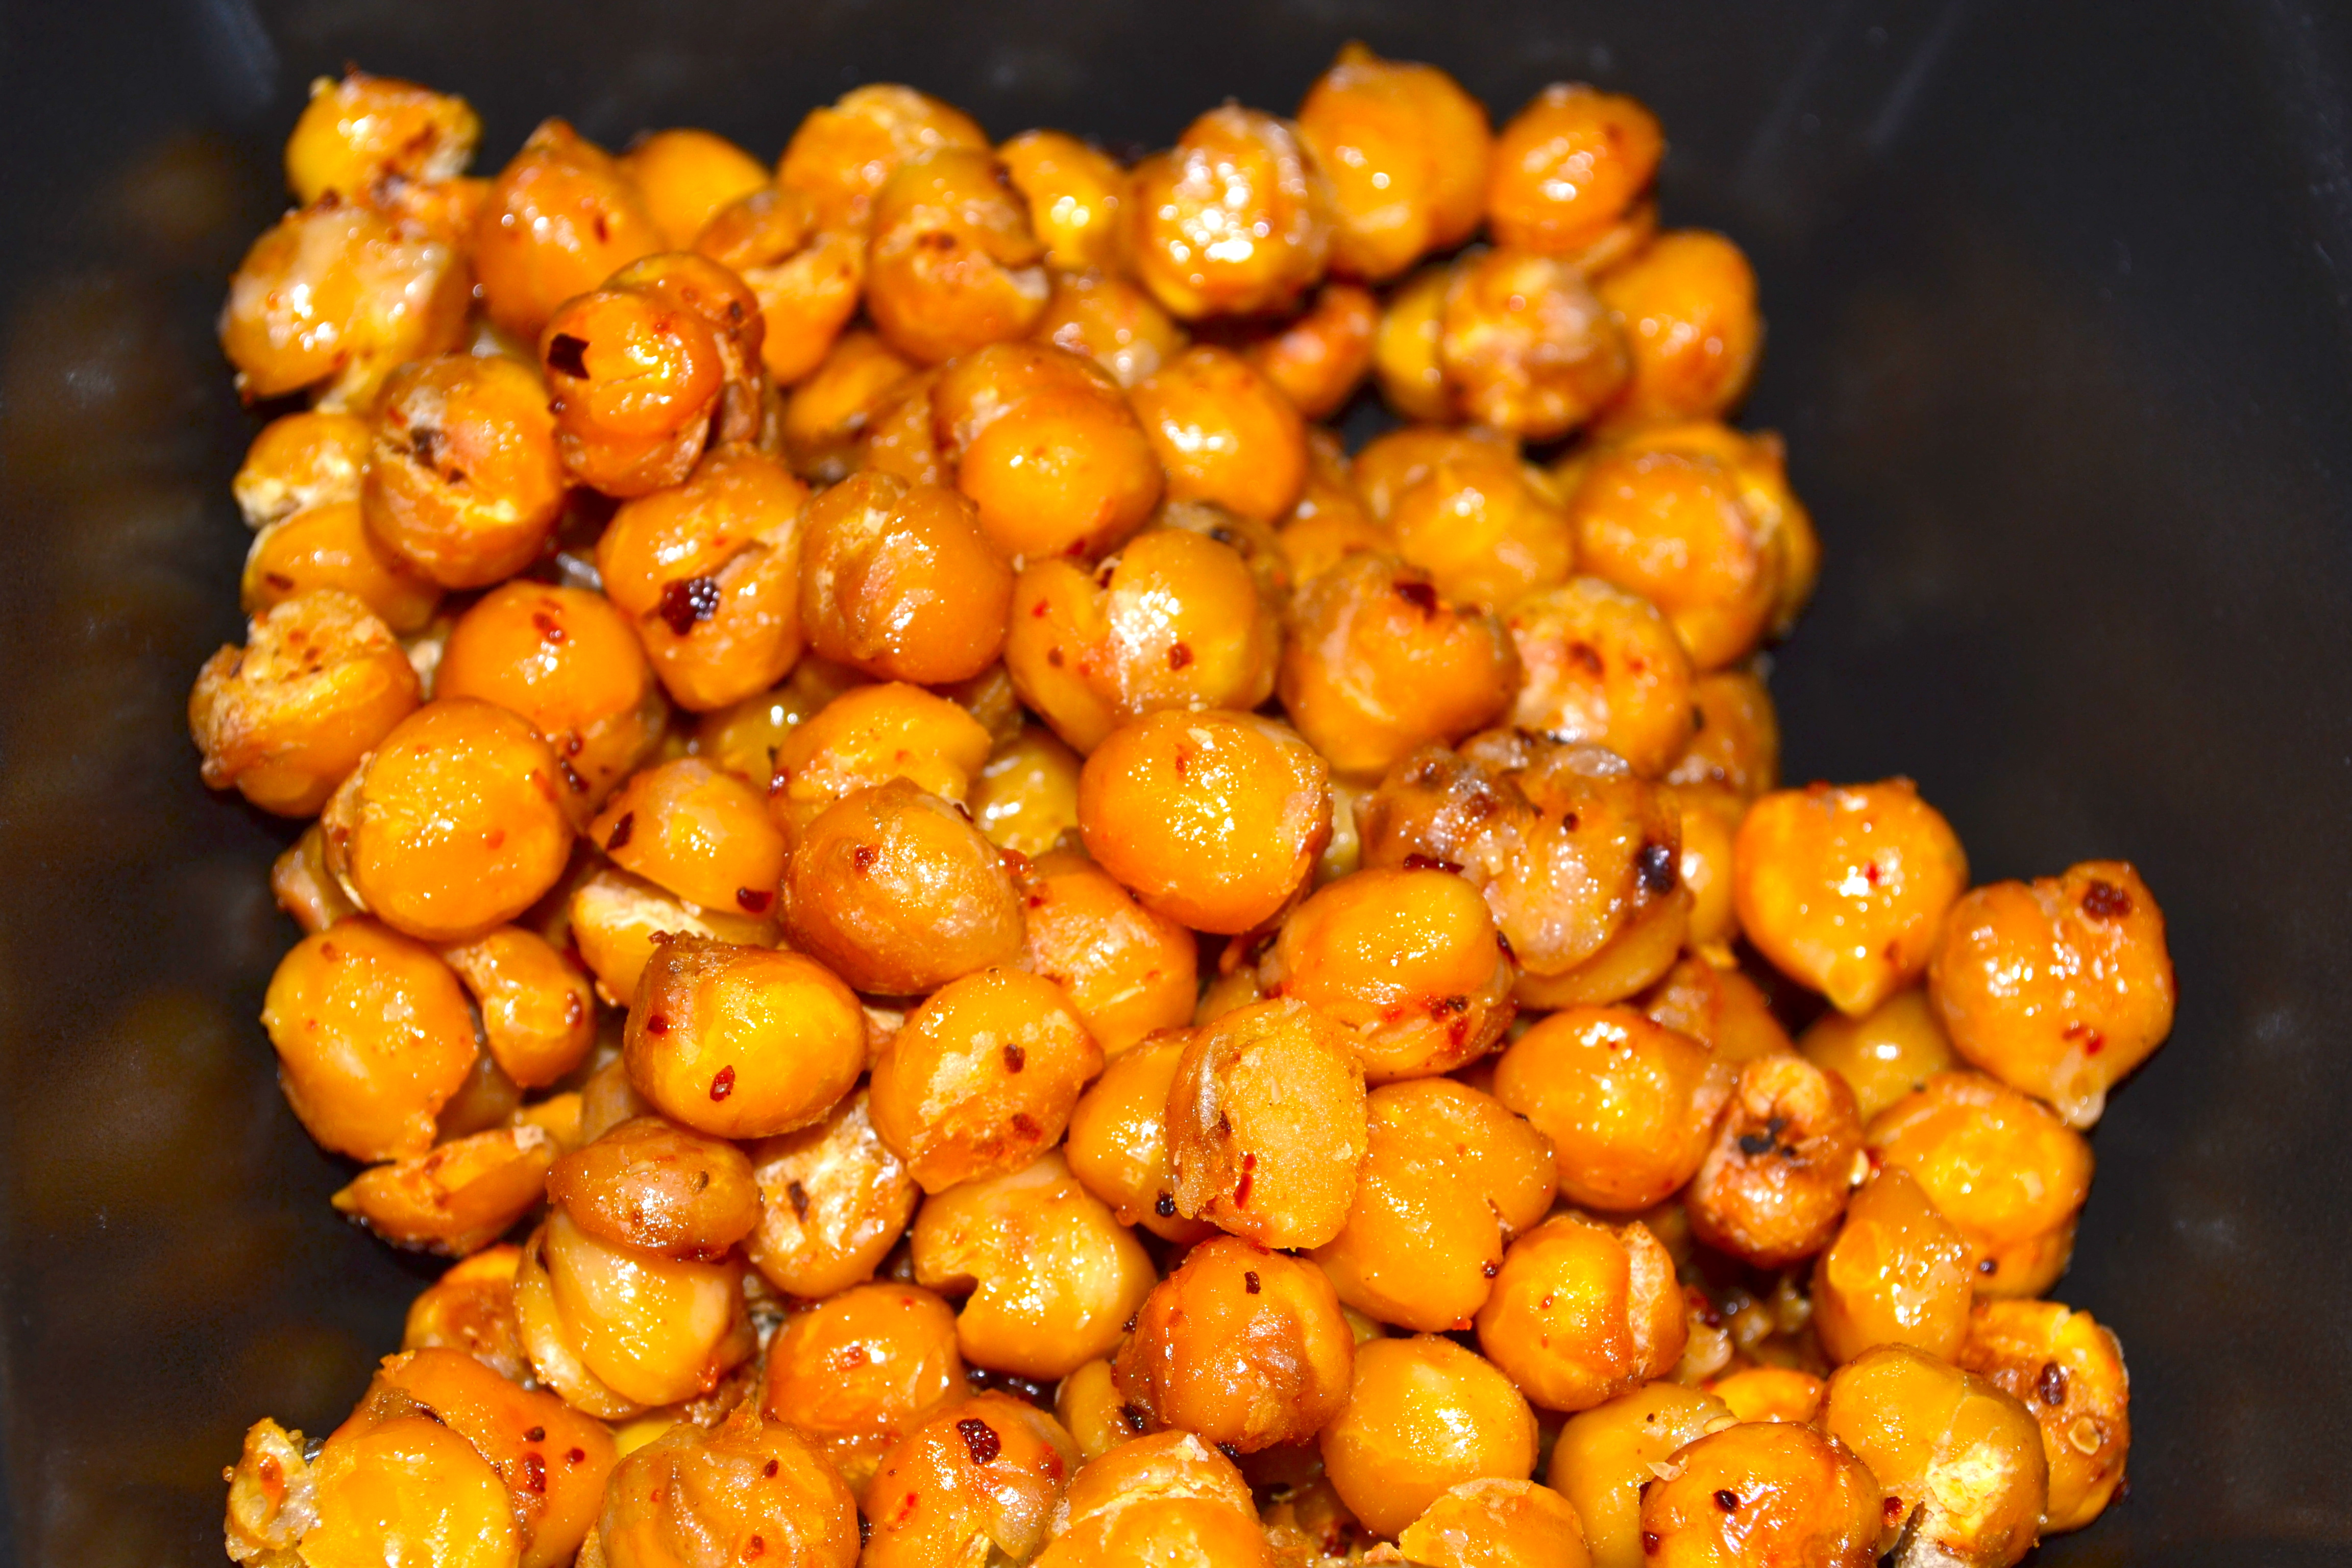 Roasted chickpeas as a snack.